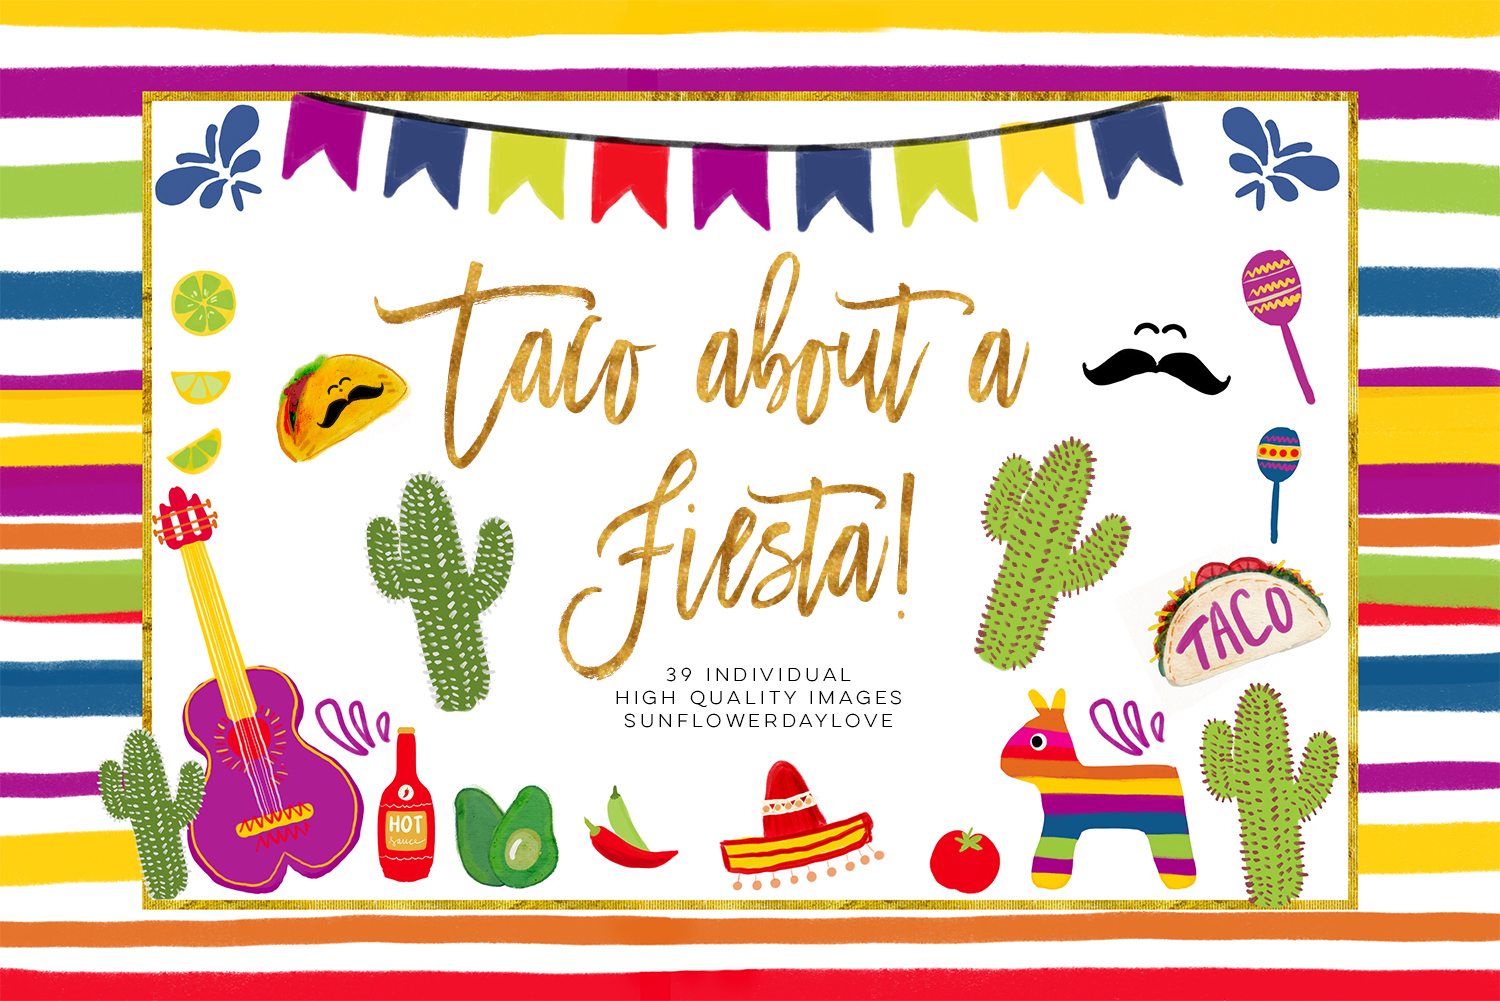 Fiesta clipart pictures png royalty free library Fiesta Digital Clipart, Cinco De Mayo Clipart, Taco about fiesta clipart,  Mexican cinco de Mayo clipart, Sombrero Mariachi Guitar Mexican Hat - Vsual png royalty free library